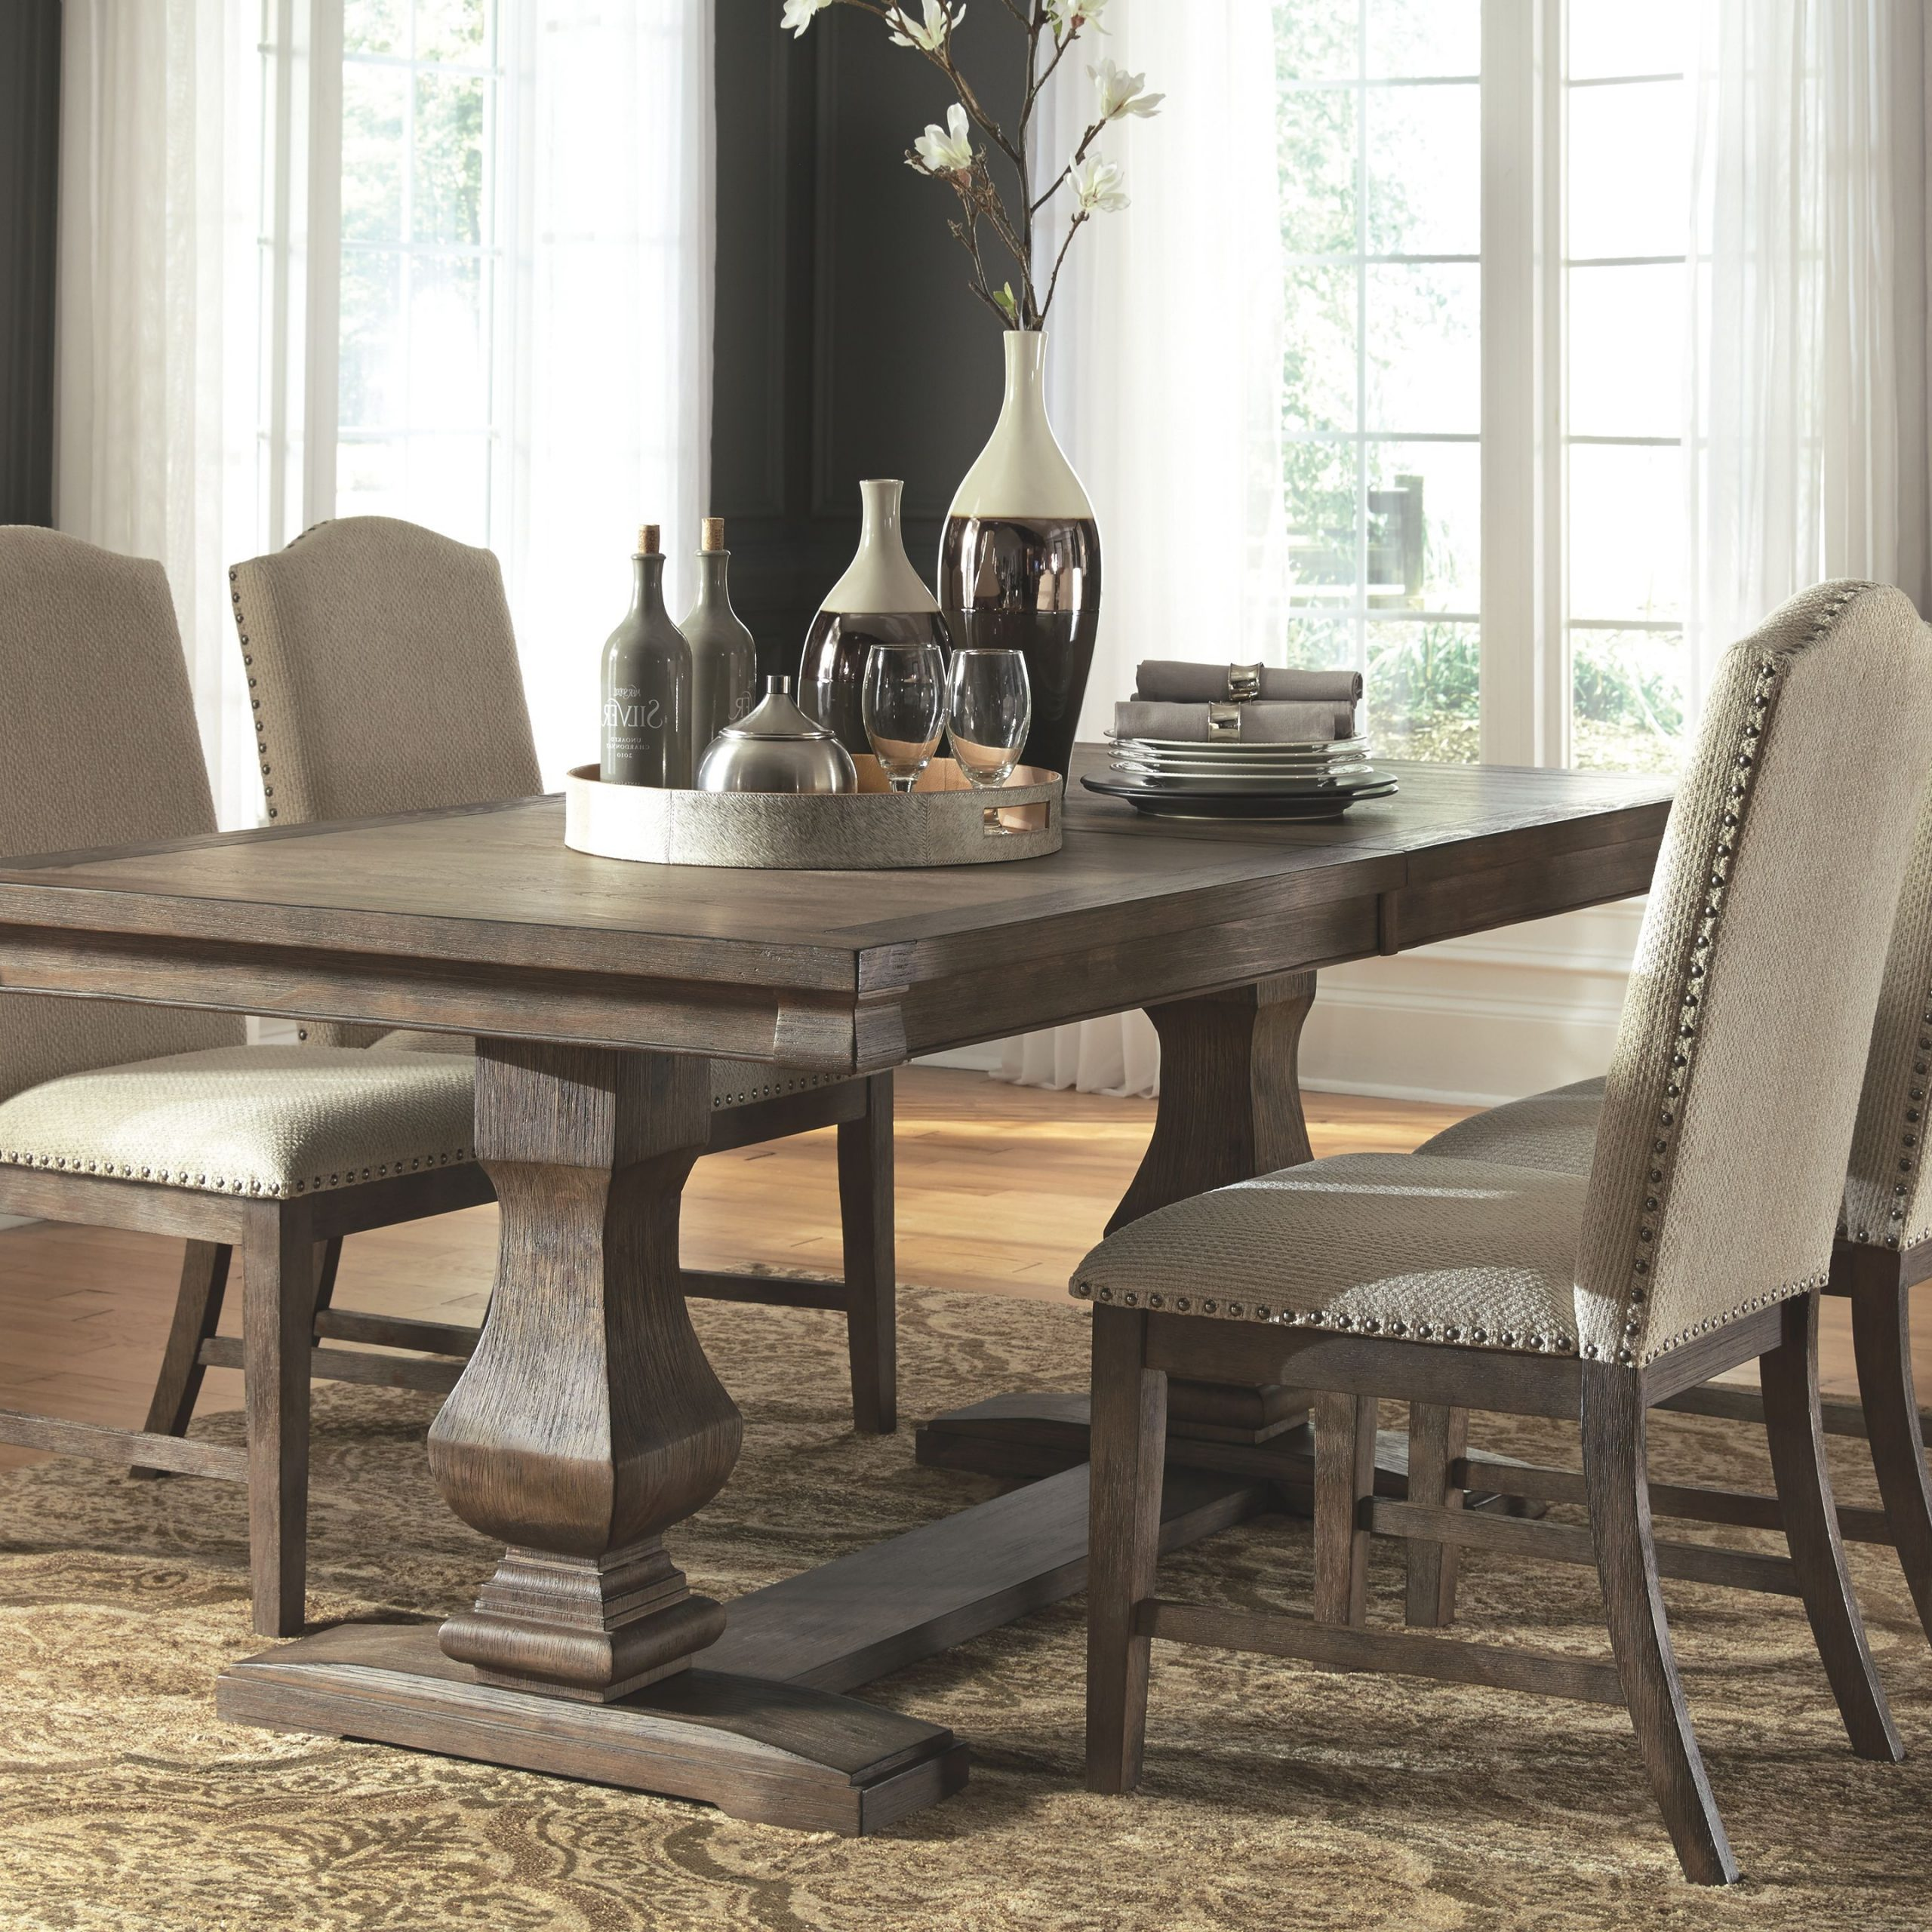 Aecc Lorraine Extending Dining Table C Hewn Oak C Pottery Within Most Popular Hewn Oak Lorraine Pedestal Extending Dining Tables (View 10 of 25)